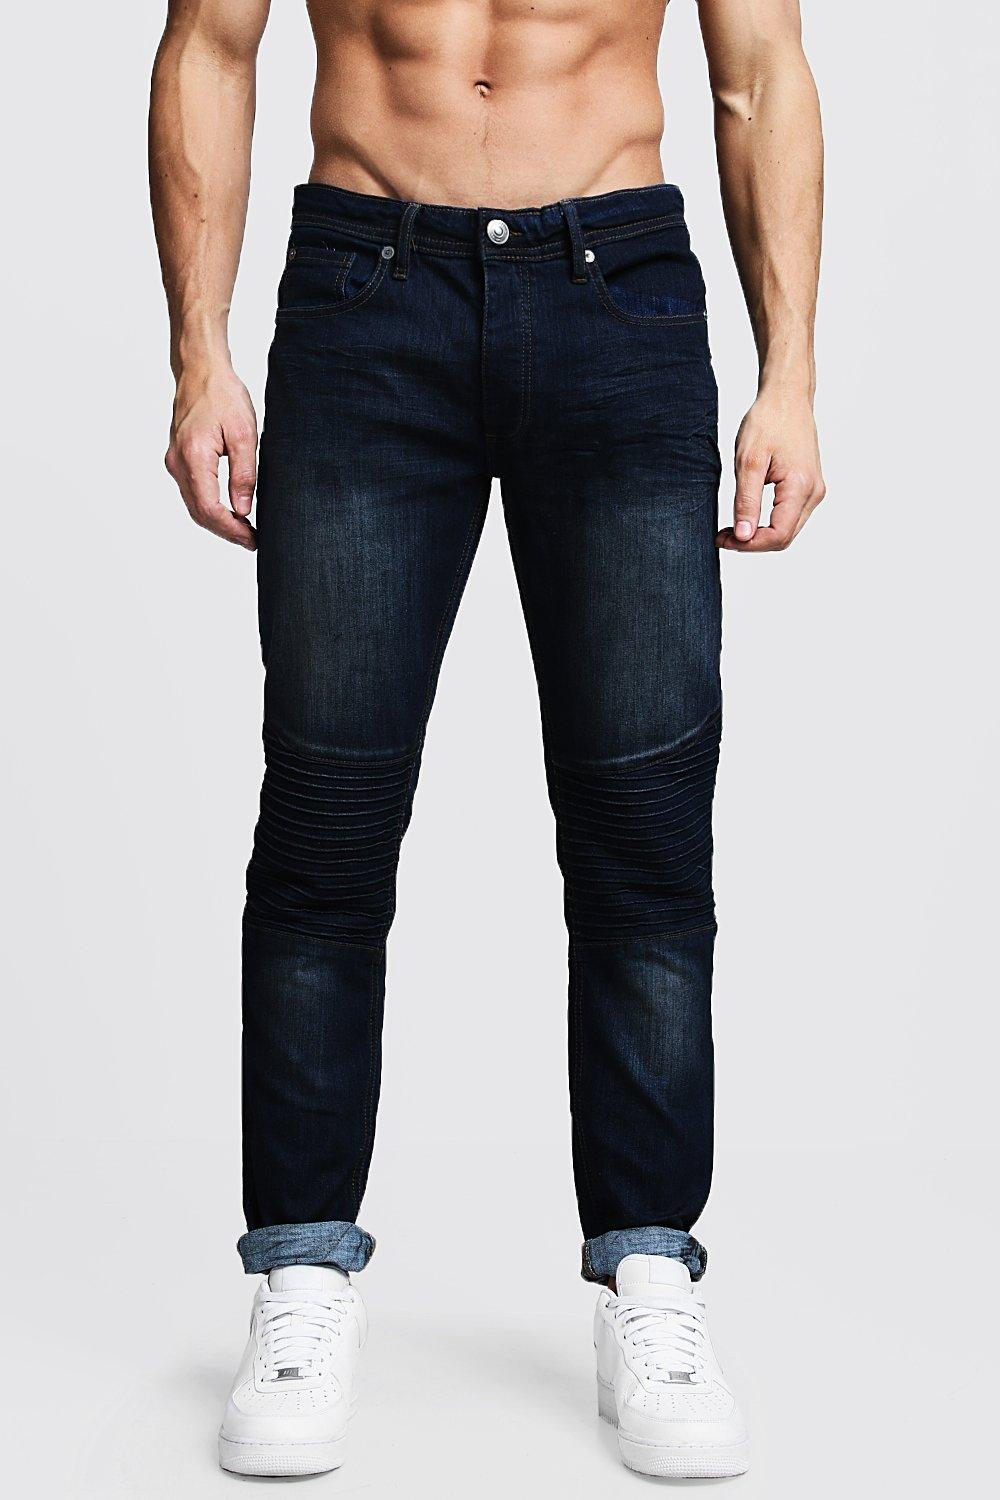 Indigo Wash Slim Fit Biker Jeans